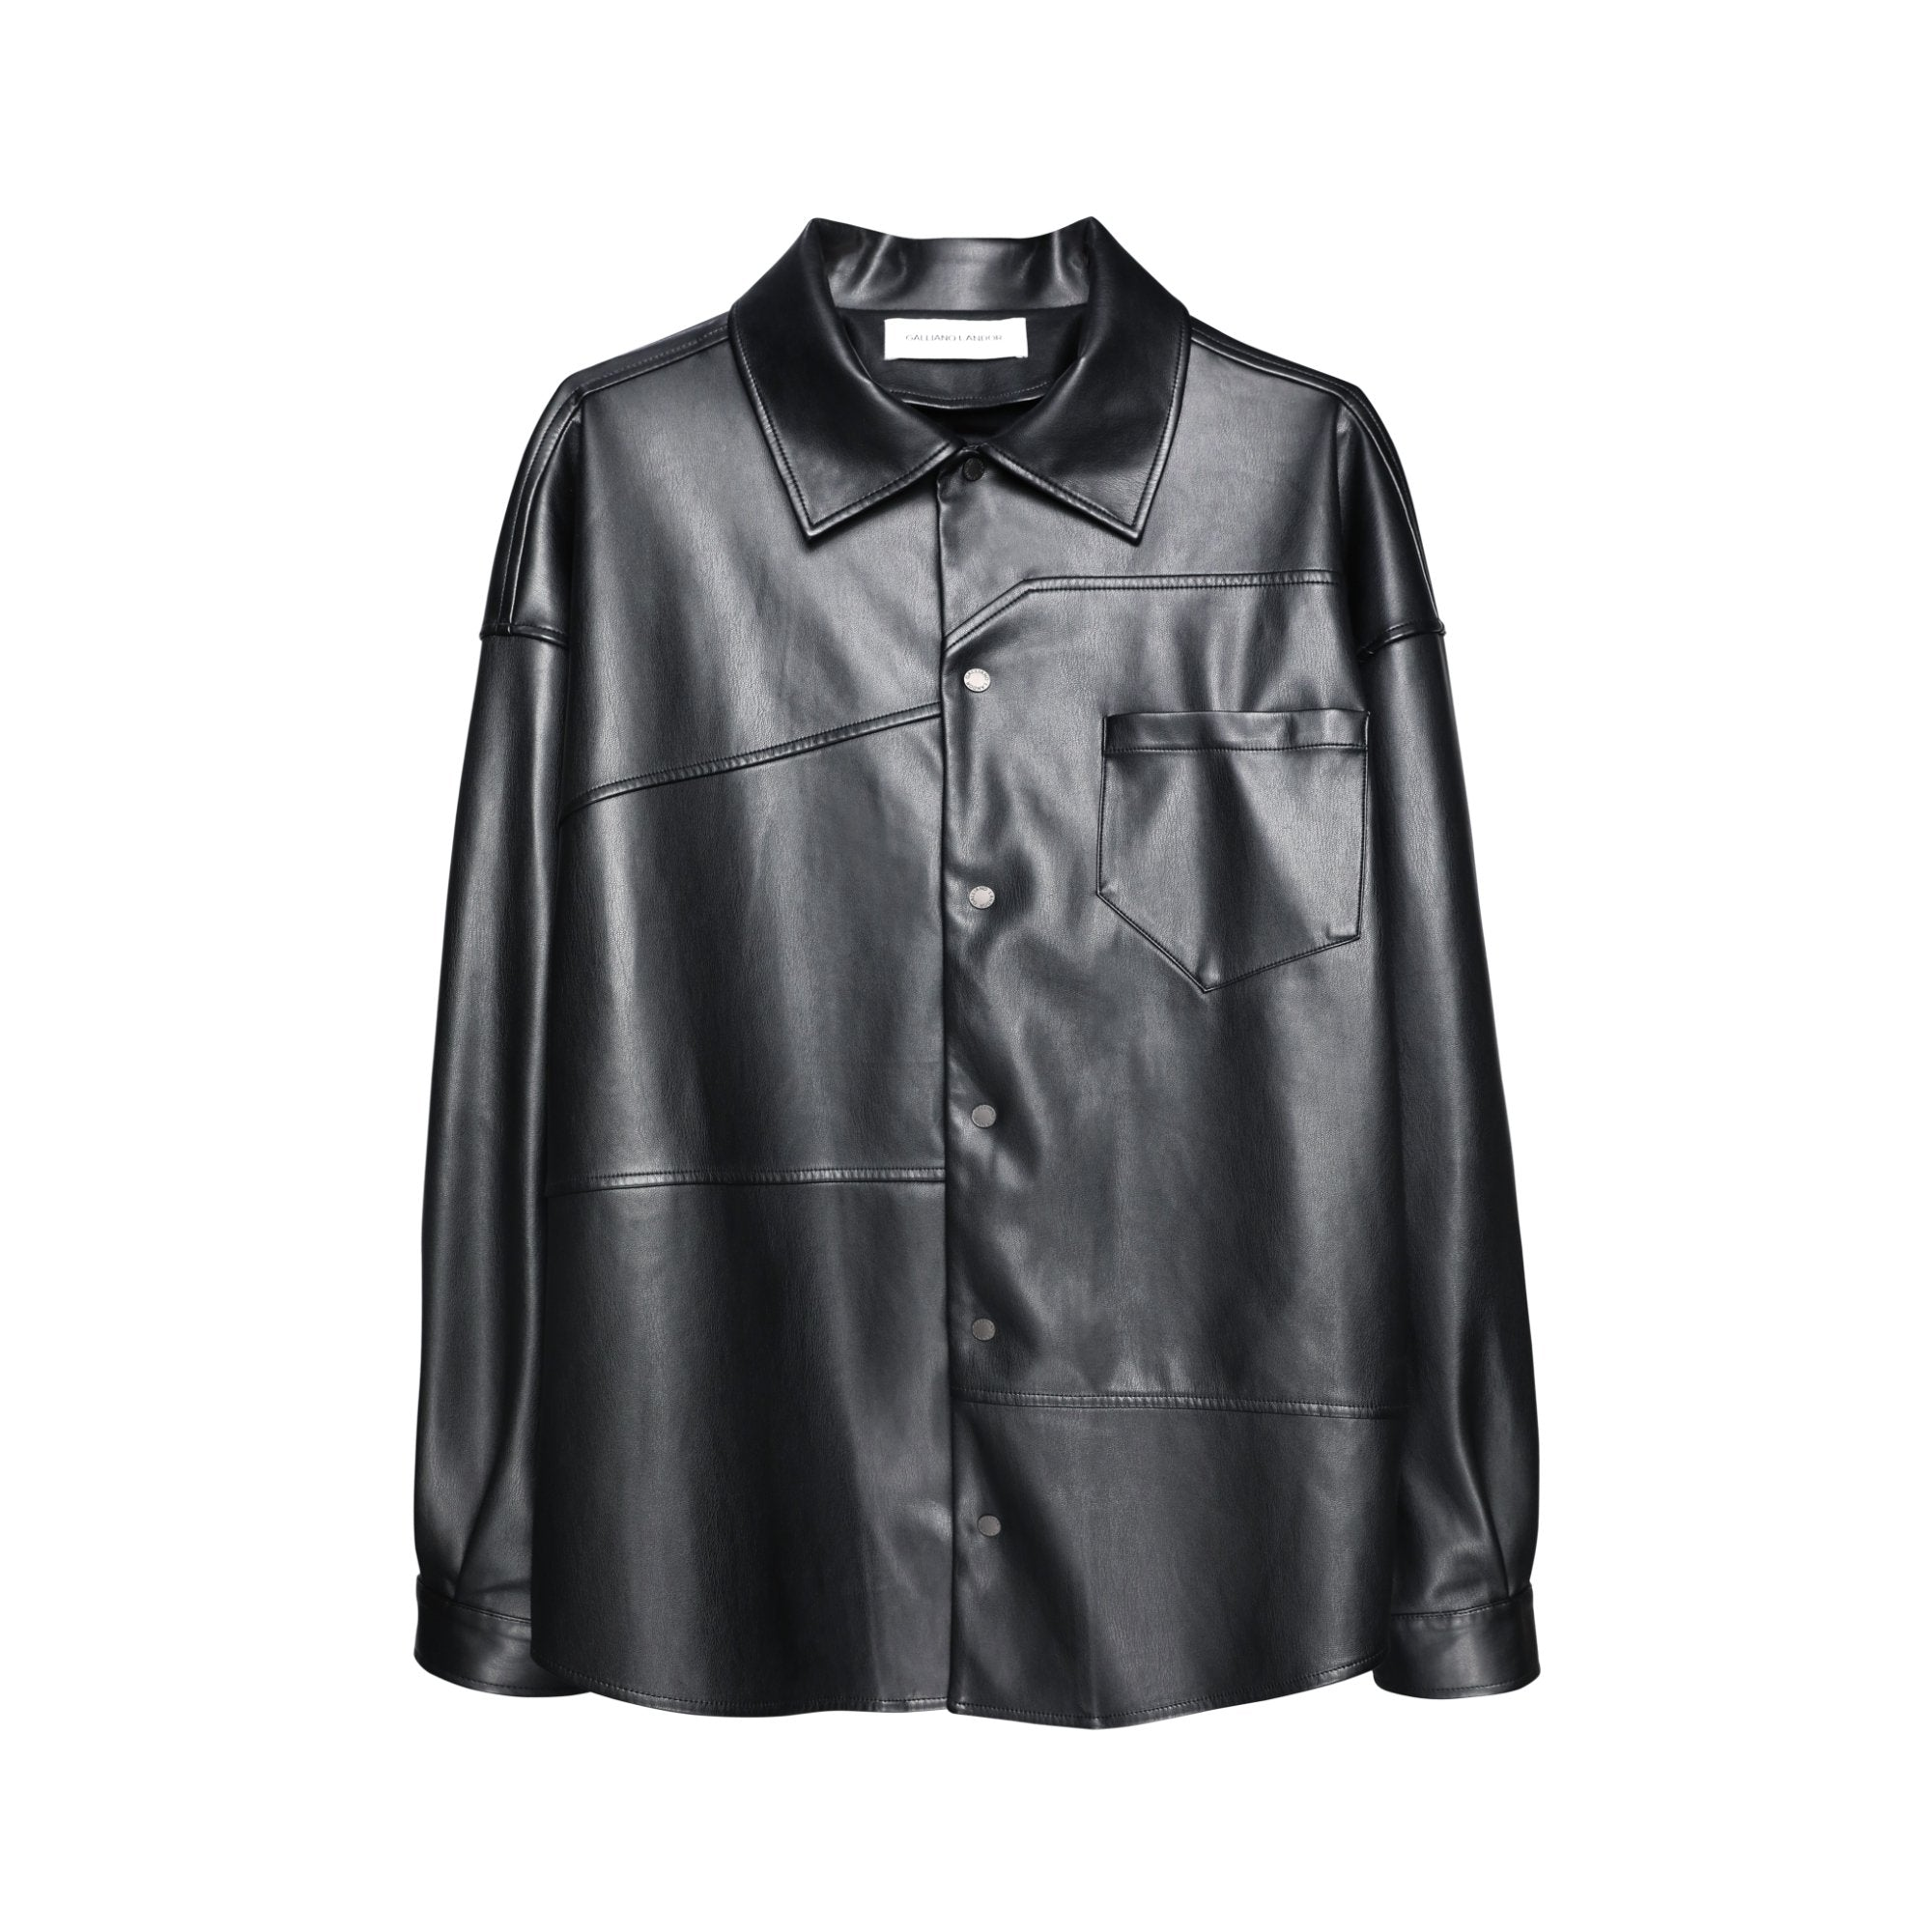 GALLIANO LANDOR Black Colored Patchwork Leather Shirt | MADA IN CHINA